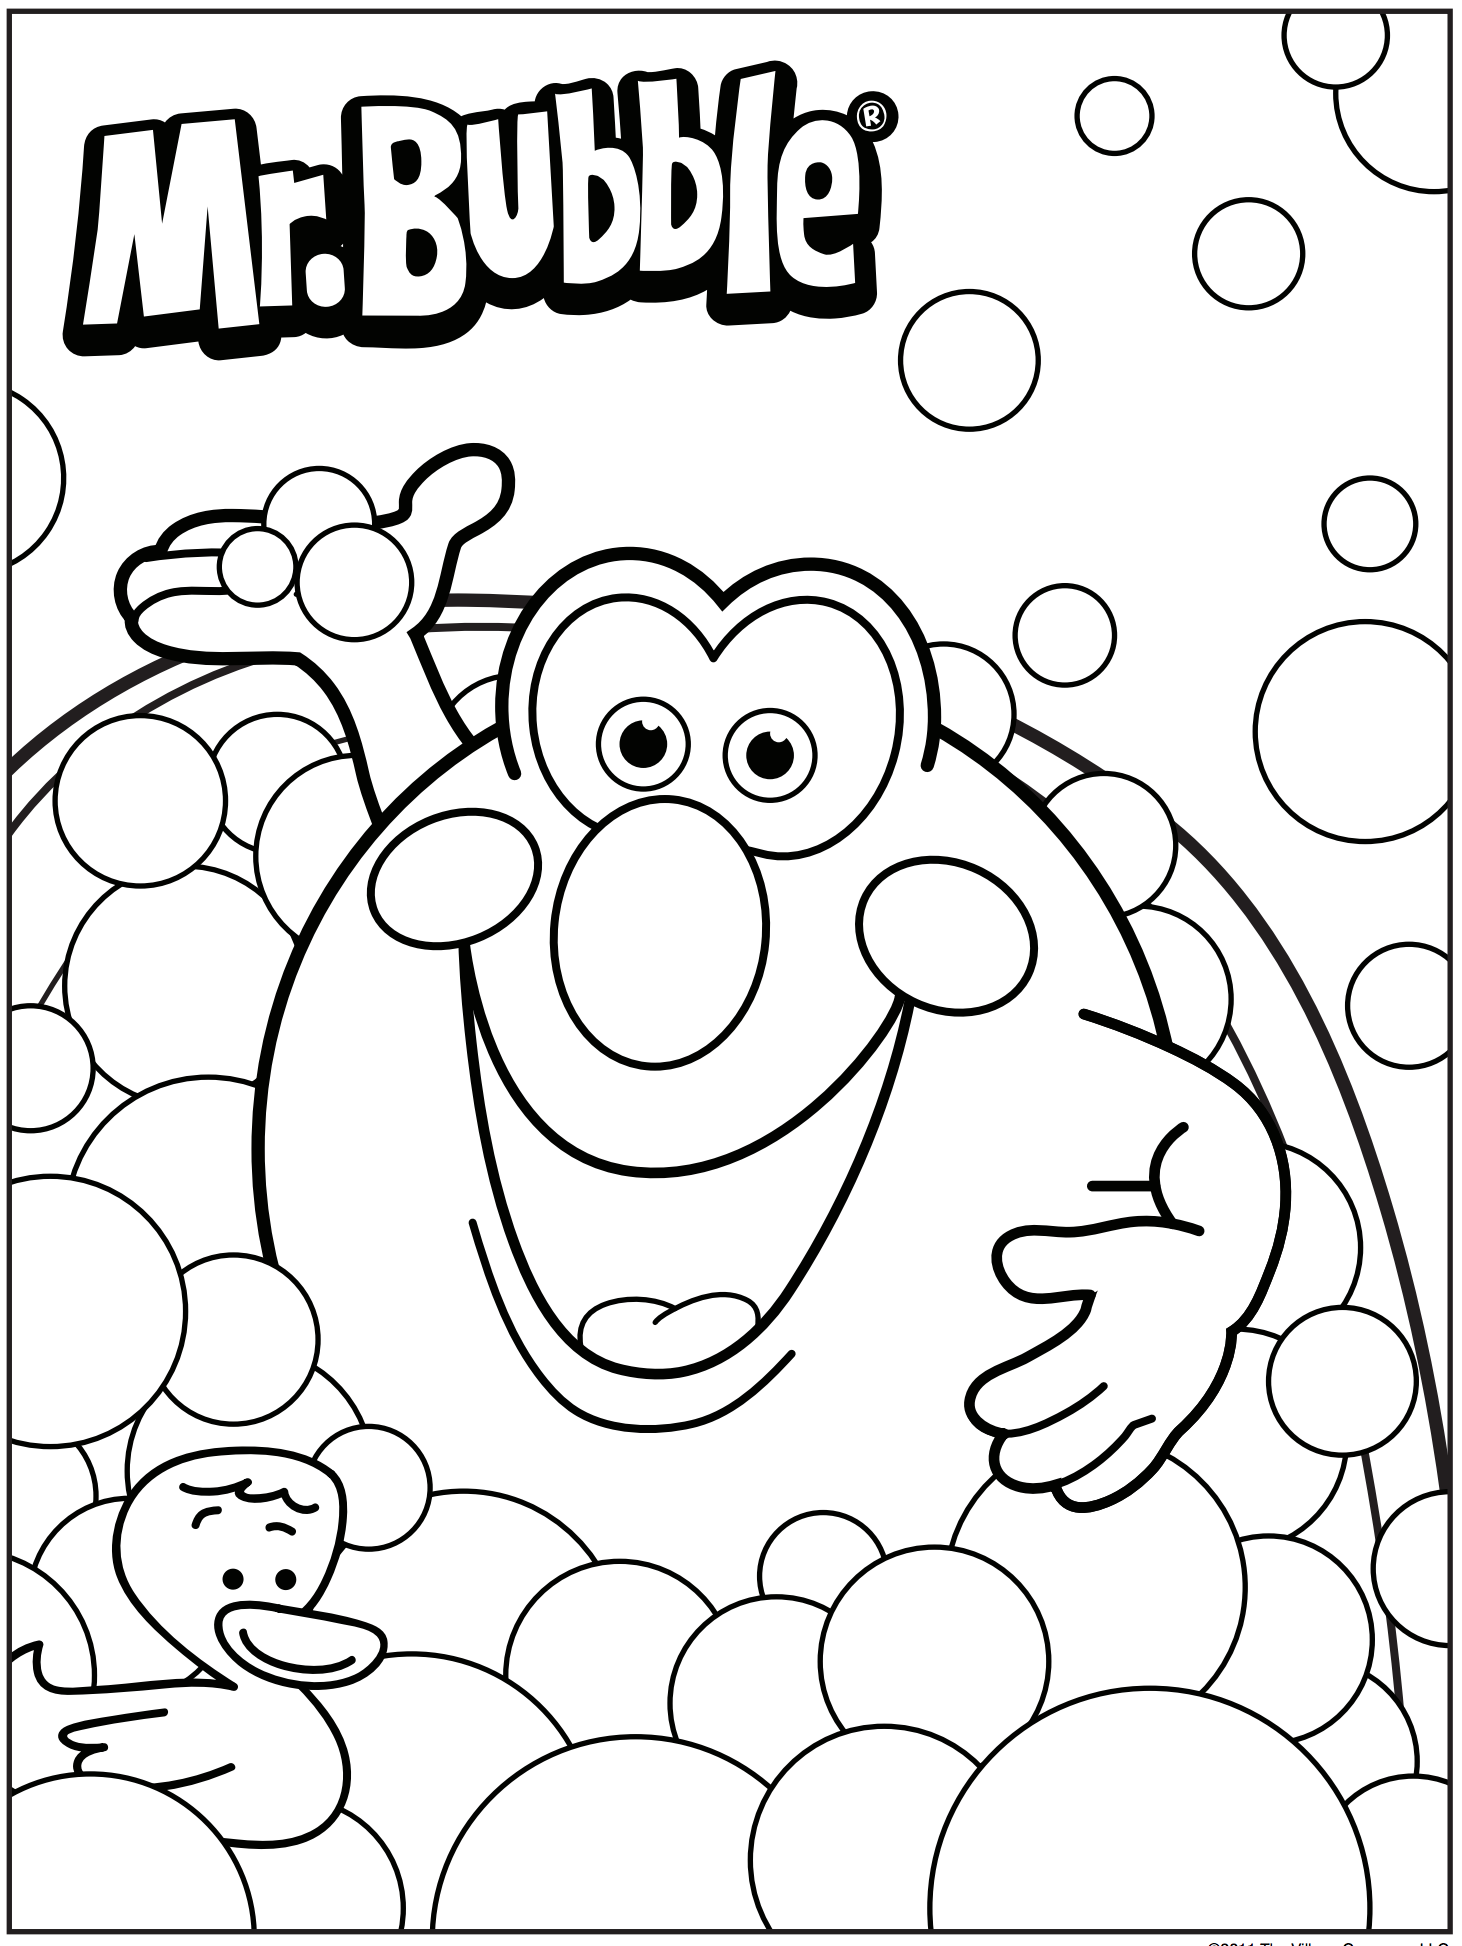 3d coloring pages - Mr Bubble Coloring Page